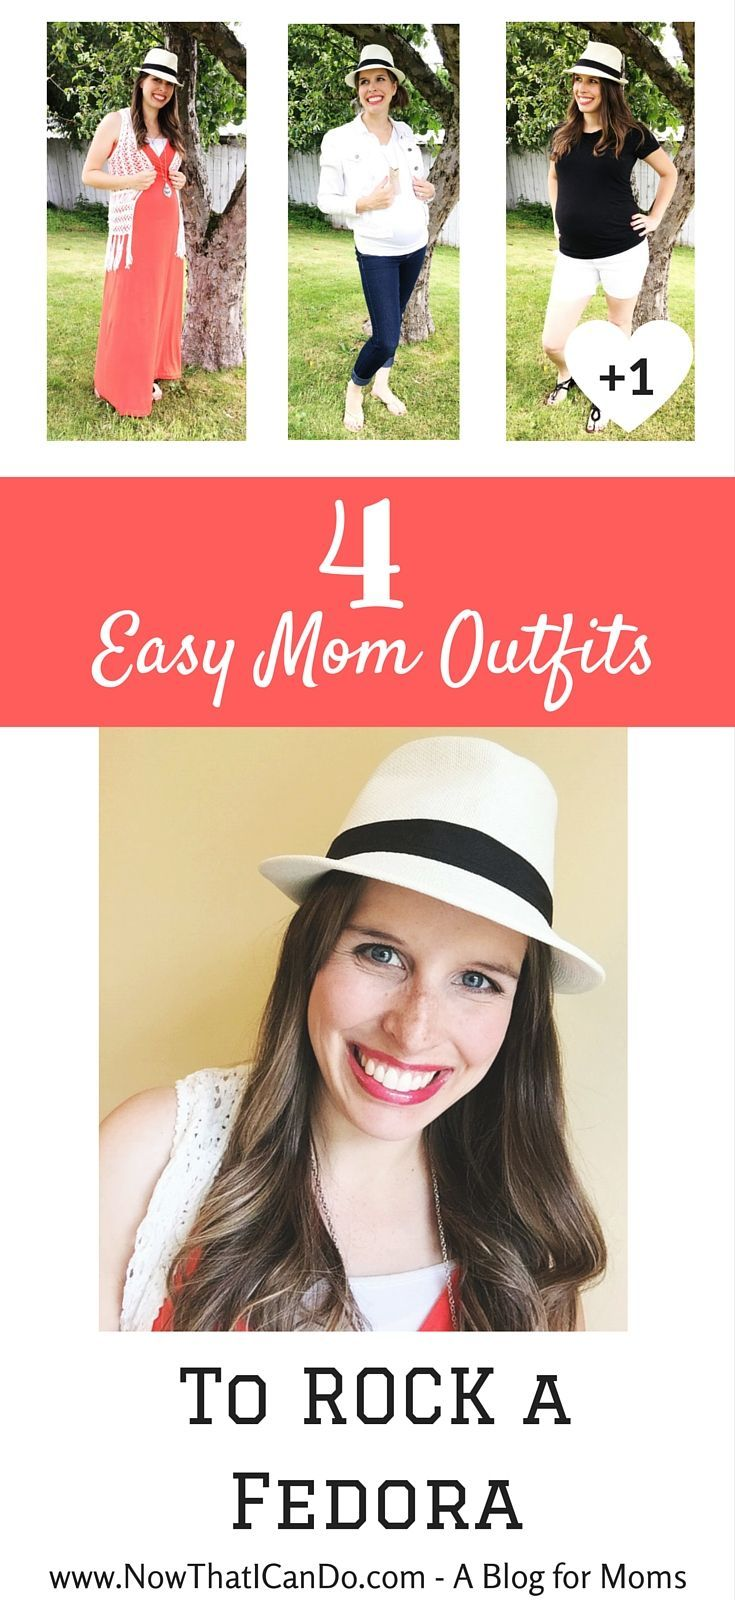 e80d3ad6b1f This mommy blogger shares how she put together four simple outfits to style  a fedora- and she had never worn one before in her life!